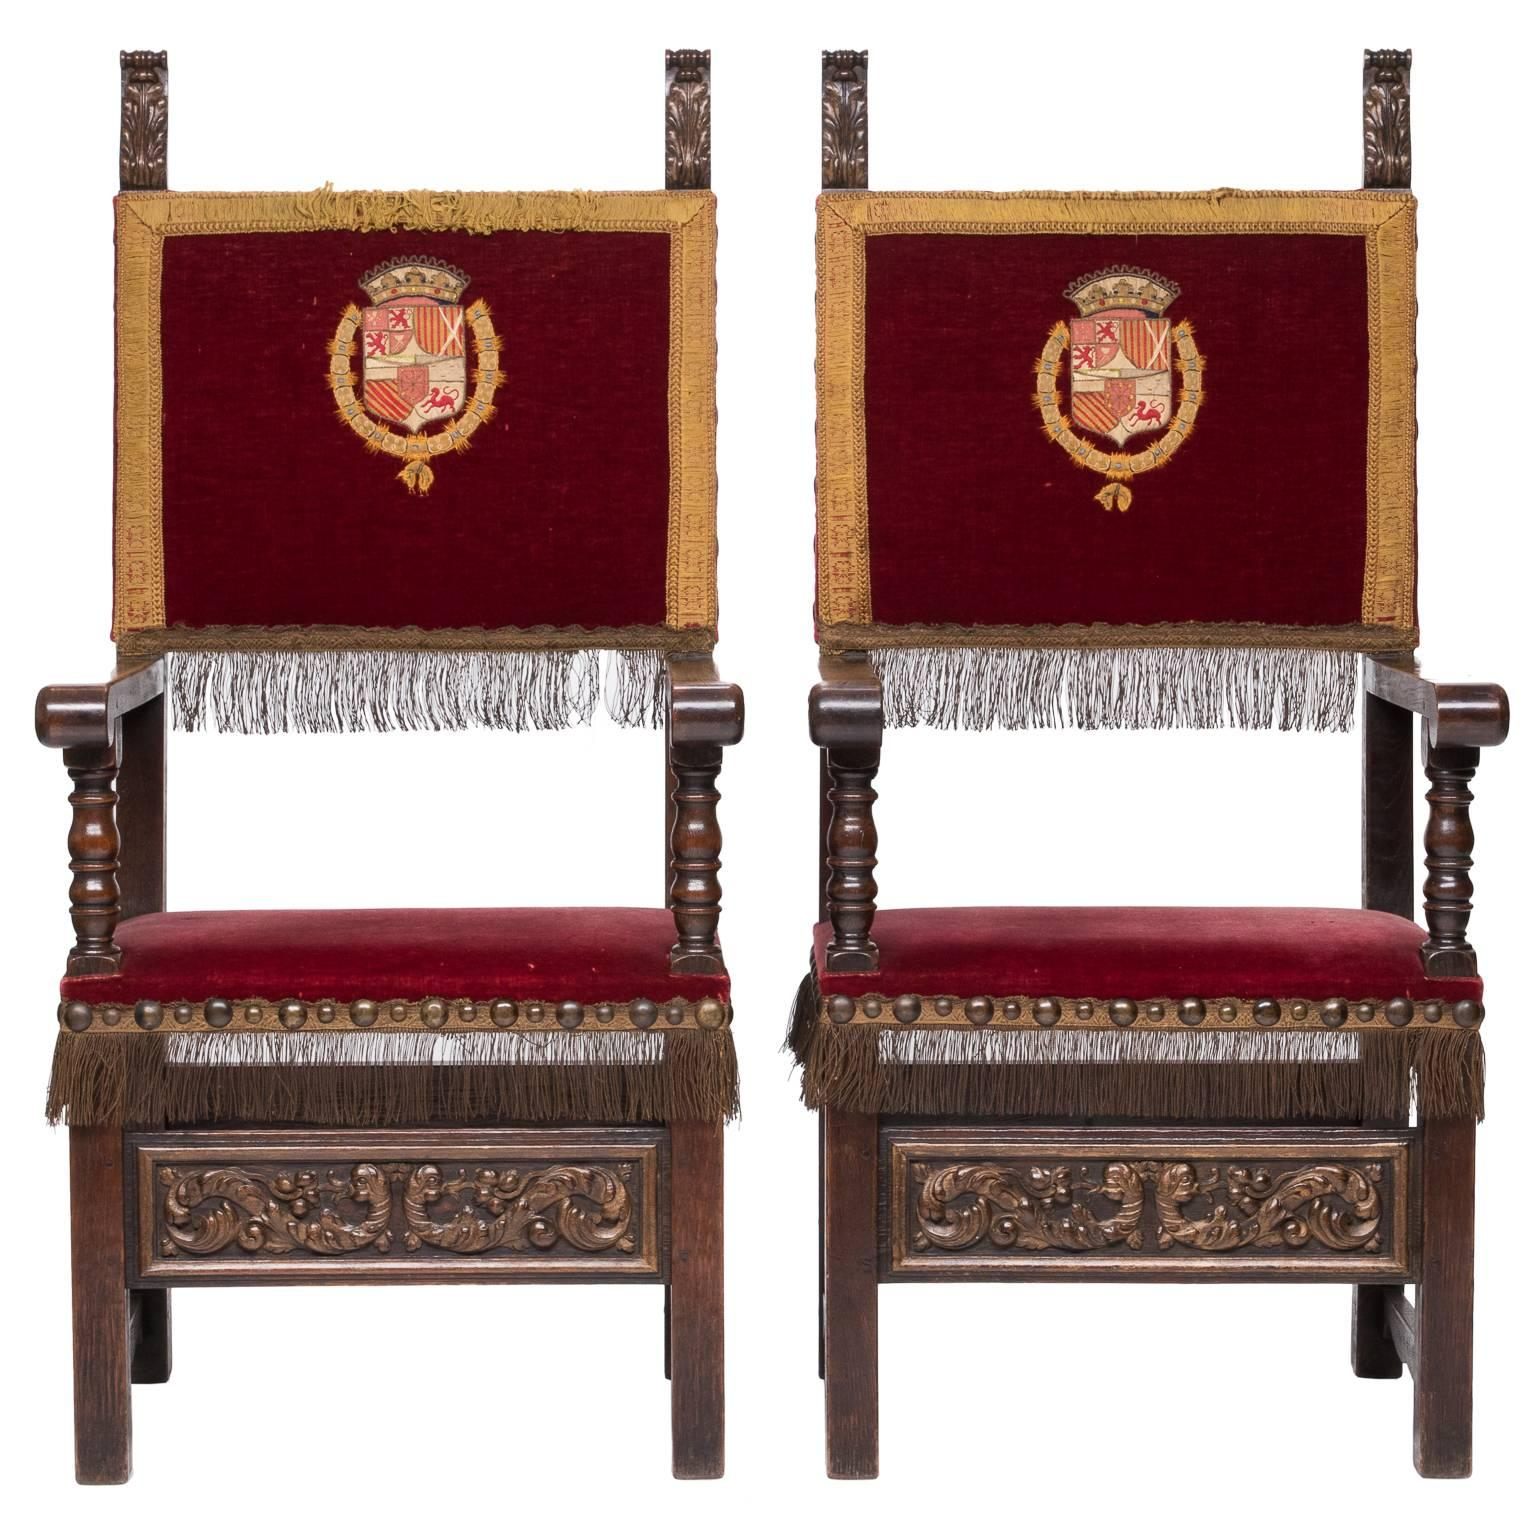 Pair Of 19th Century Queen Anne Childs Chairs For Sale At 1stdibs